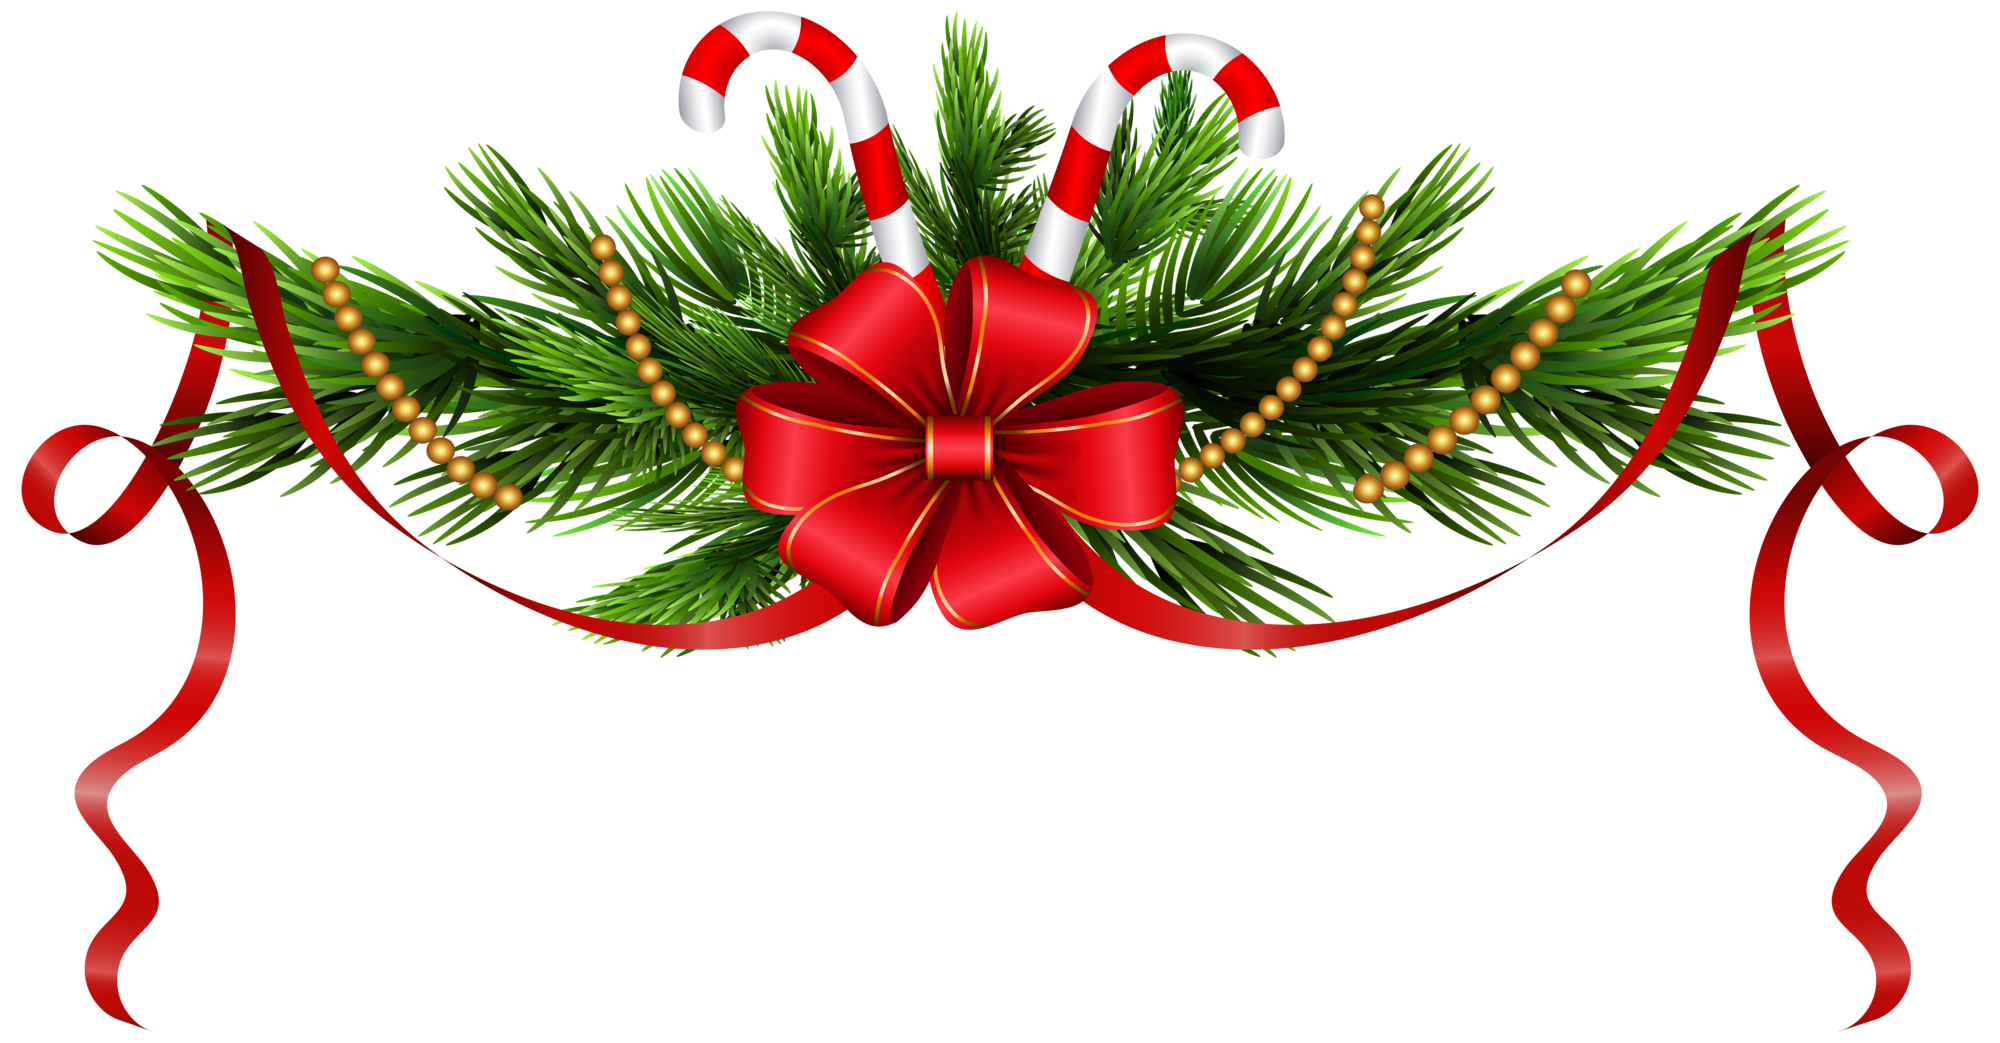 Christmas pine branches decoration. Ornament clipart leaf